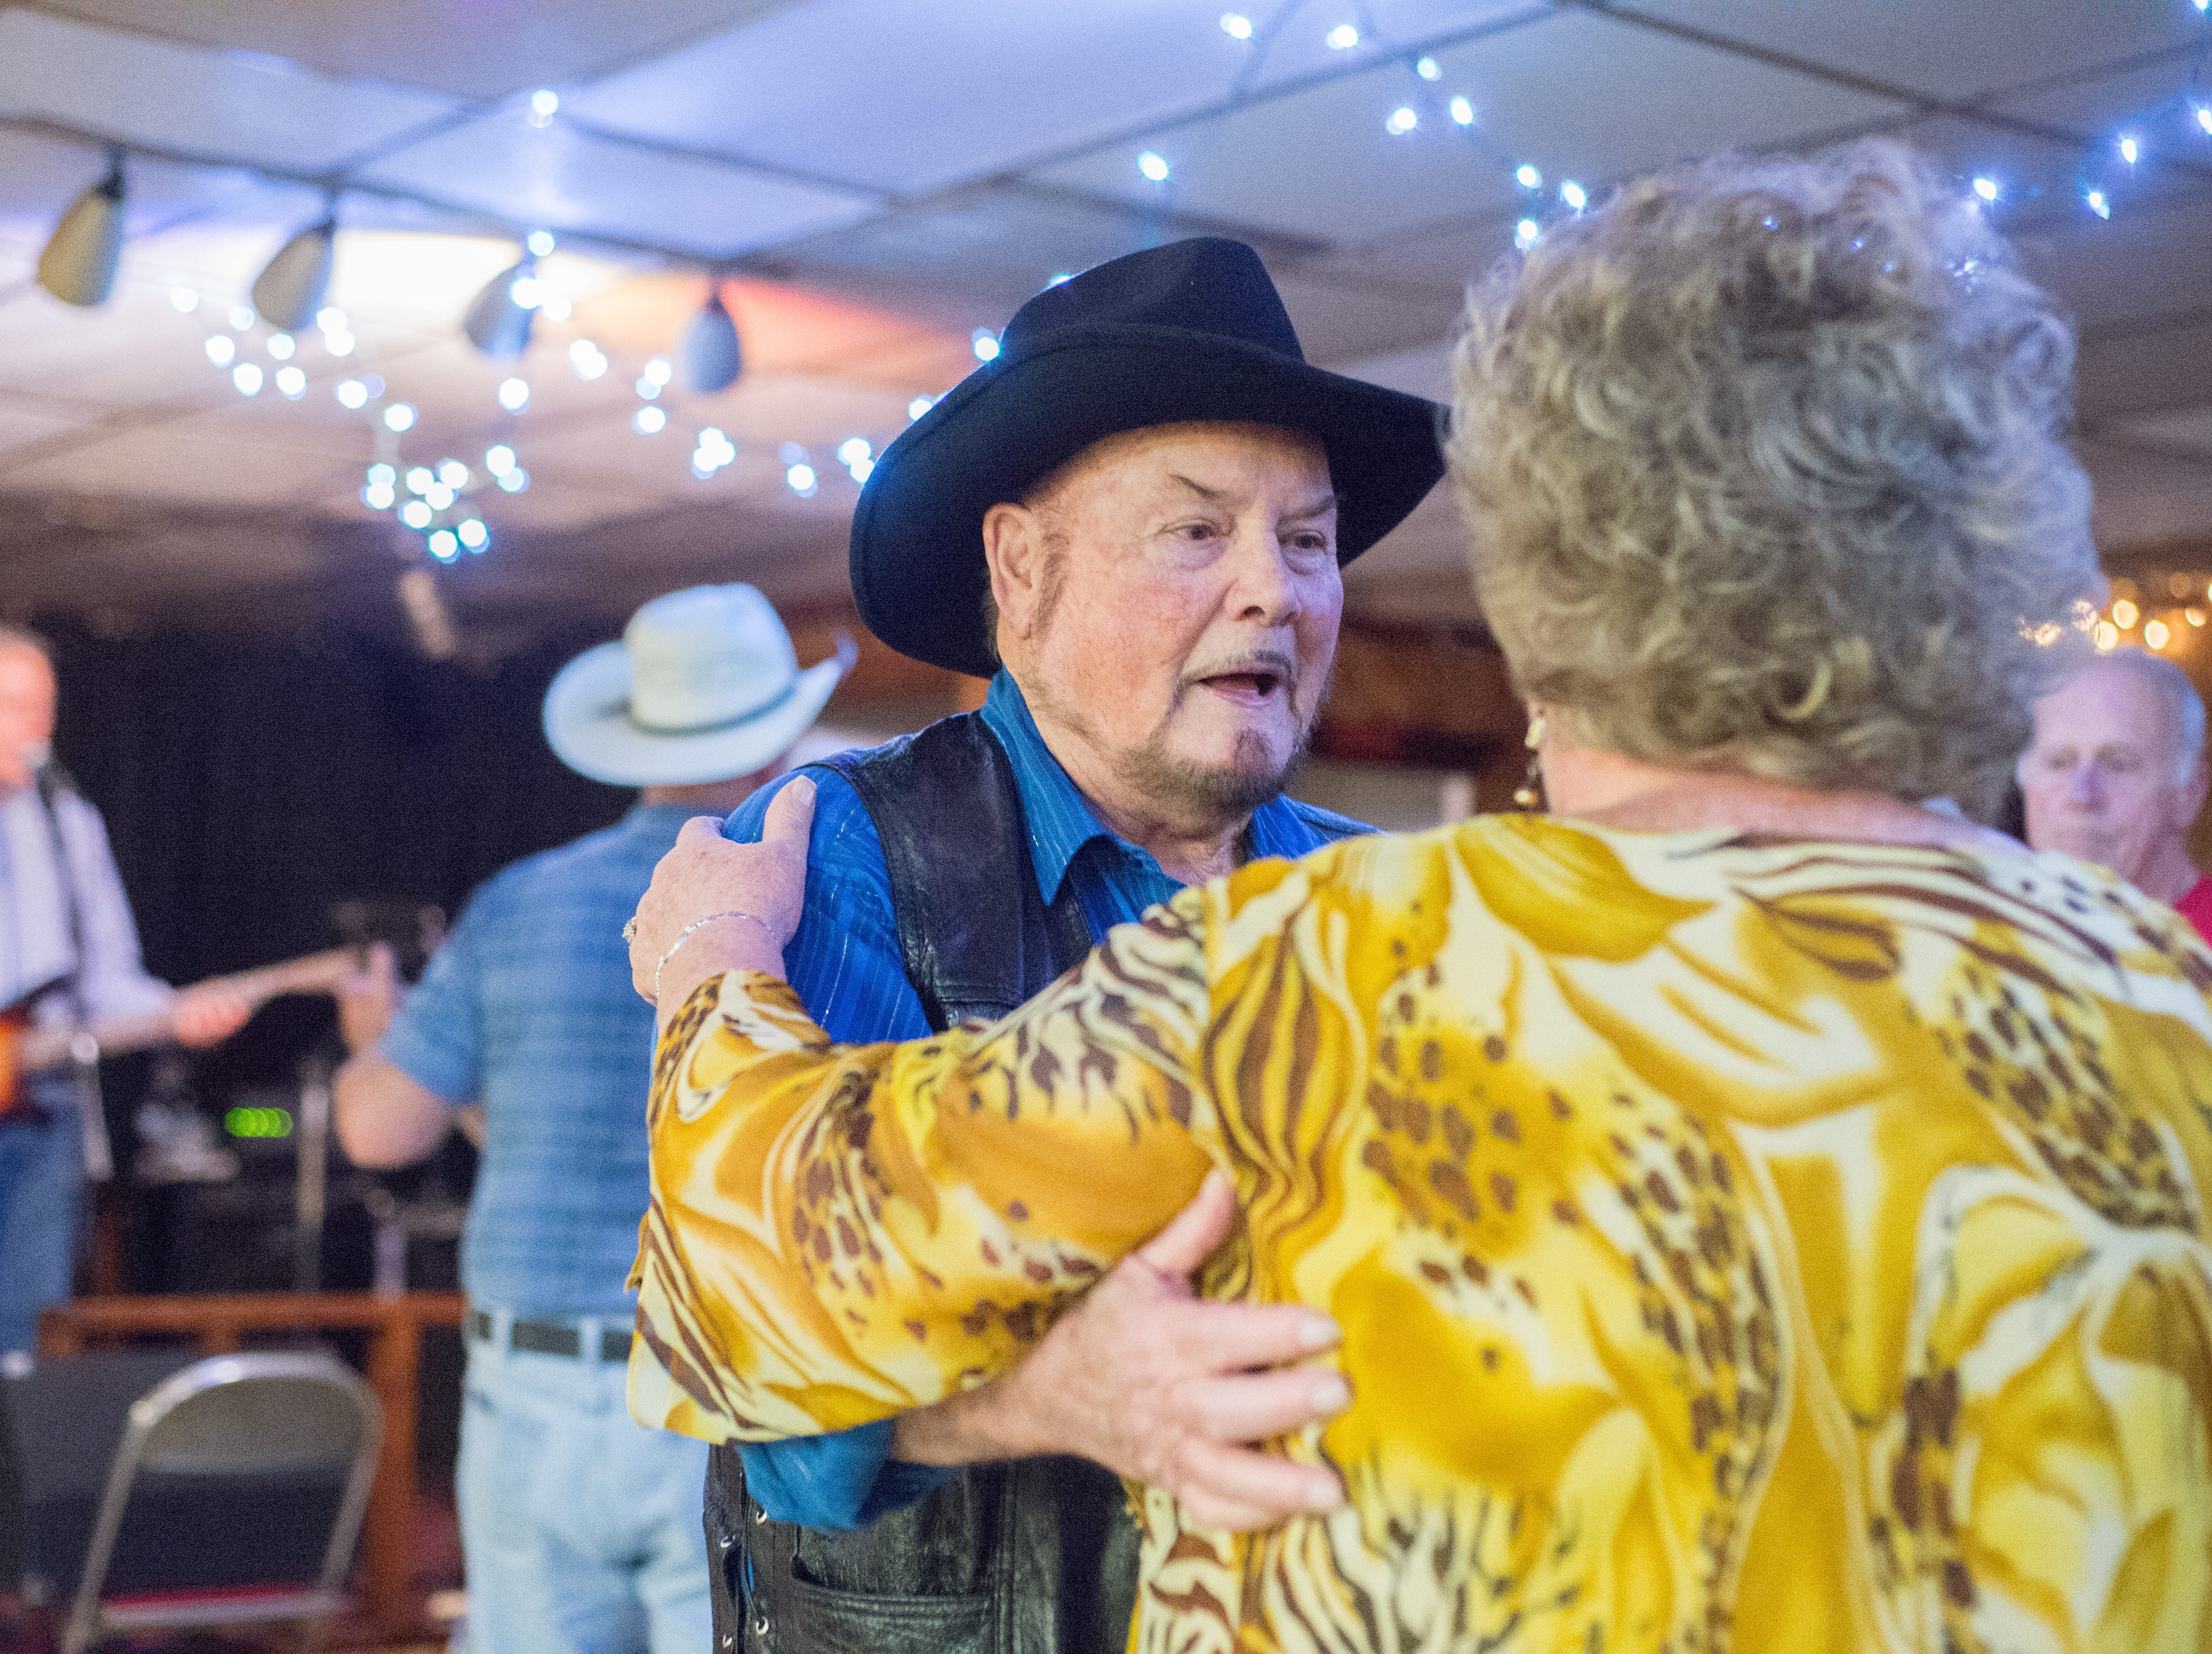 Woody Barber and Lois Binkley enjoy dancing during a performance of the Blue Creek Band at Long Hollow Jamboree in Goodlettsville on Saturday, April 7.